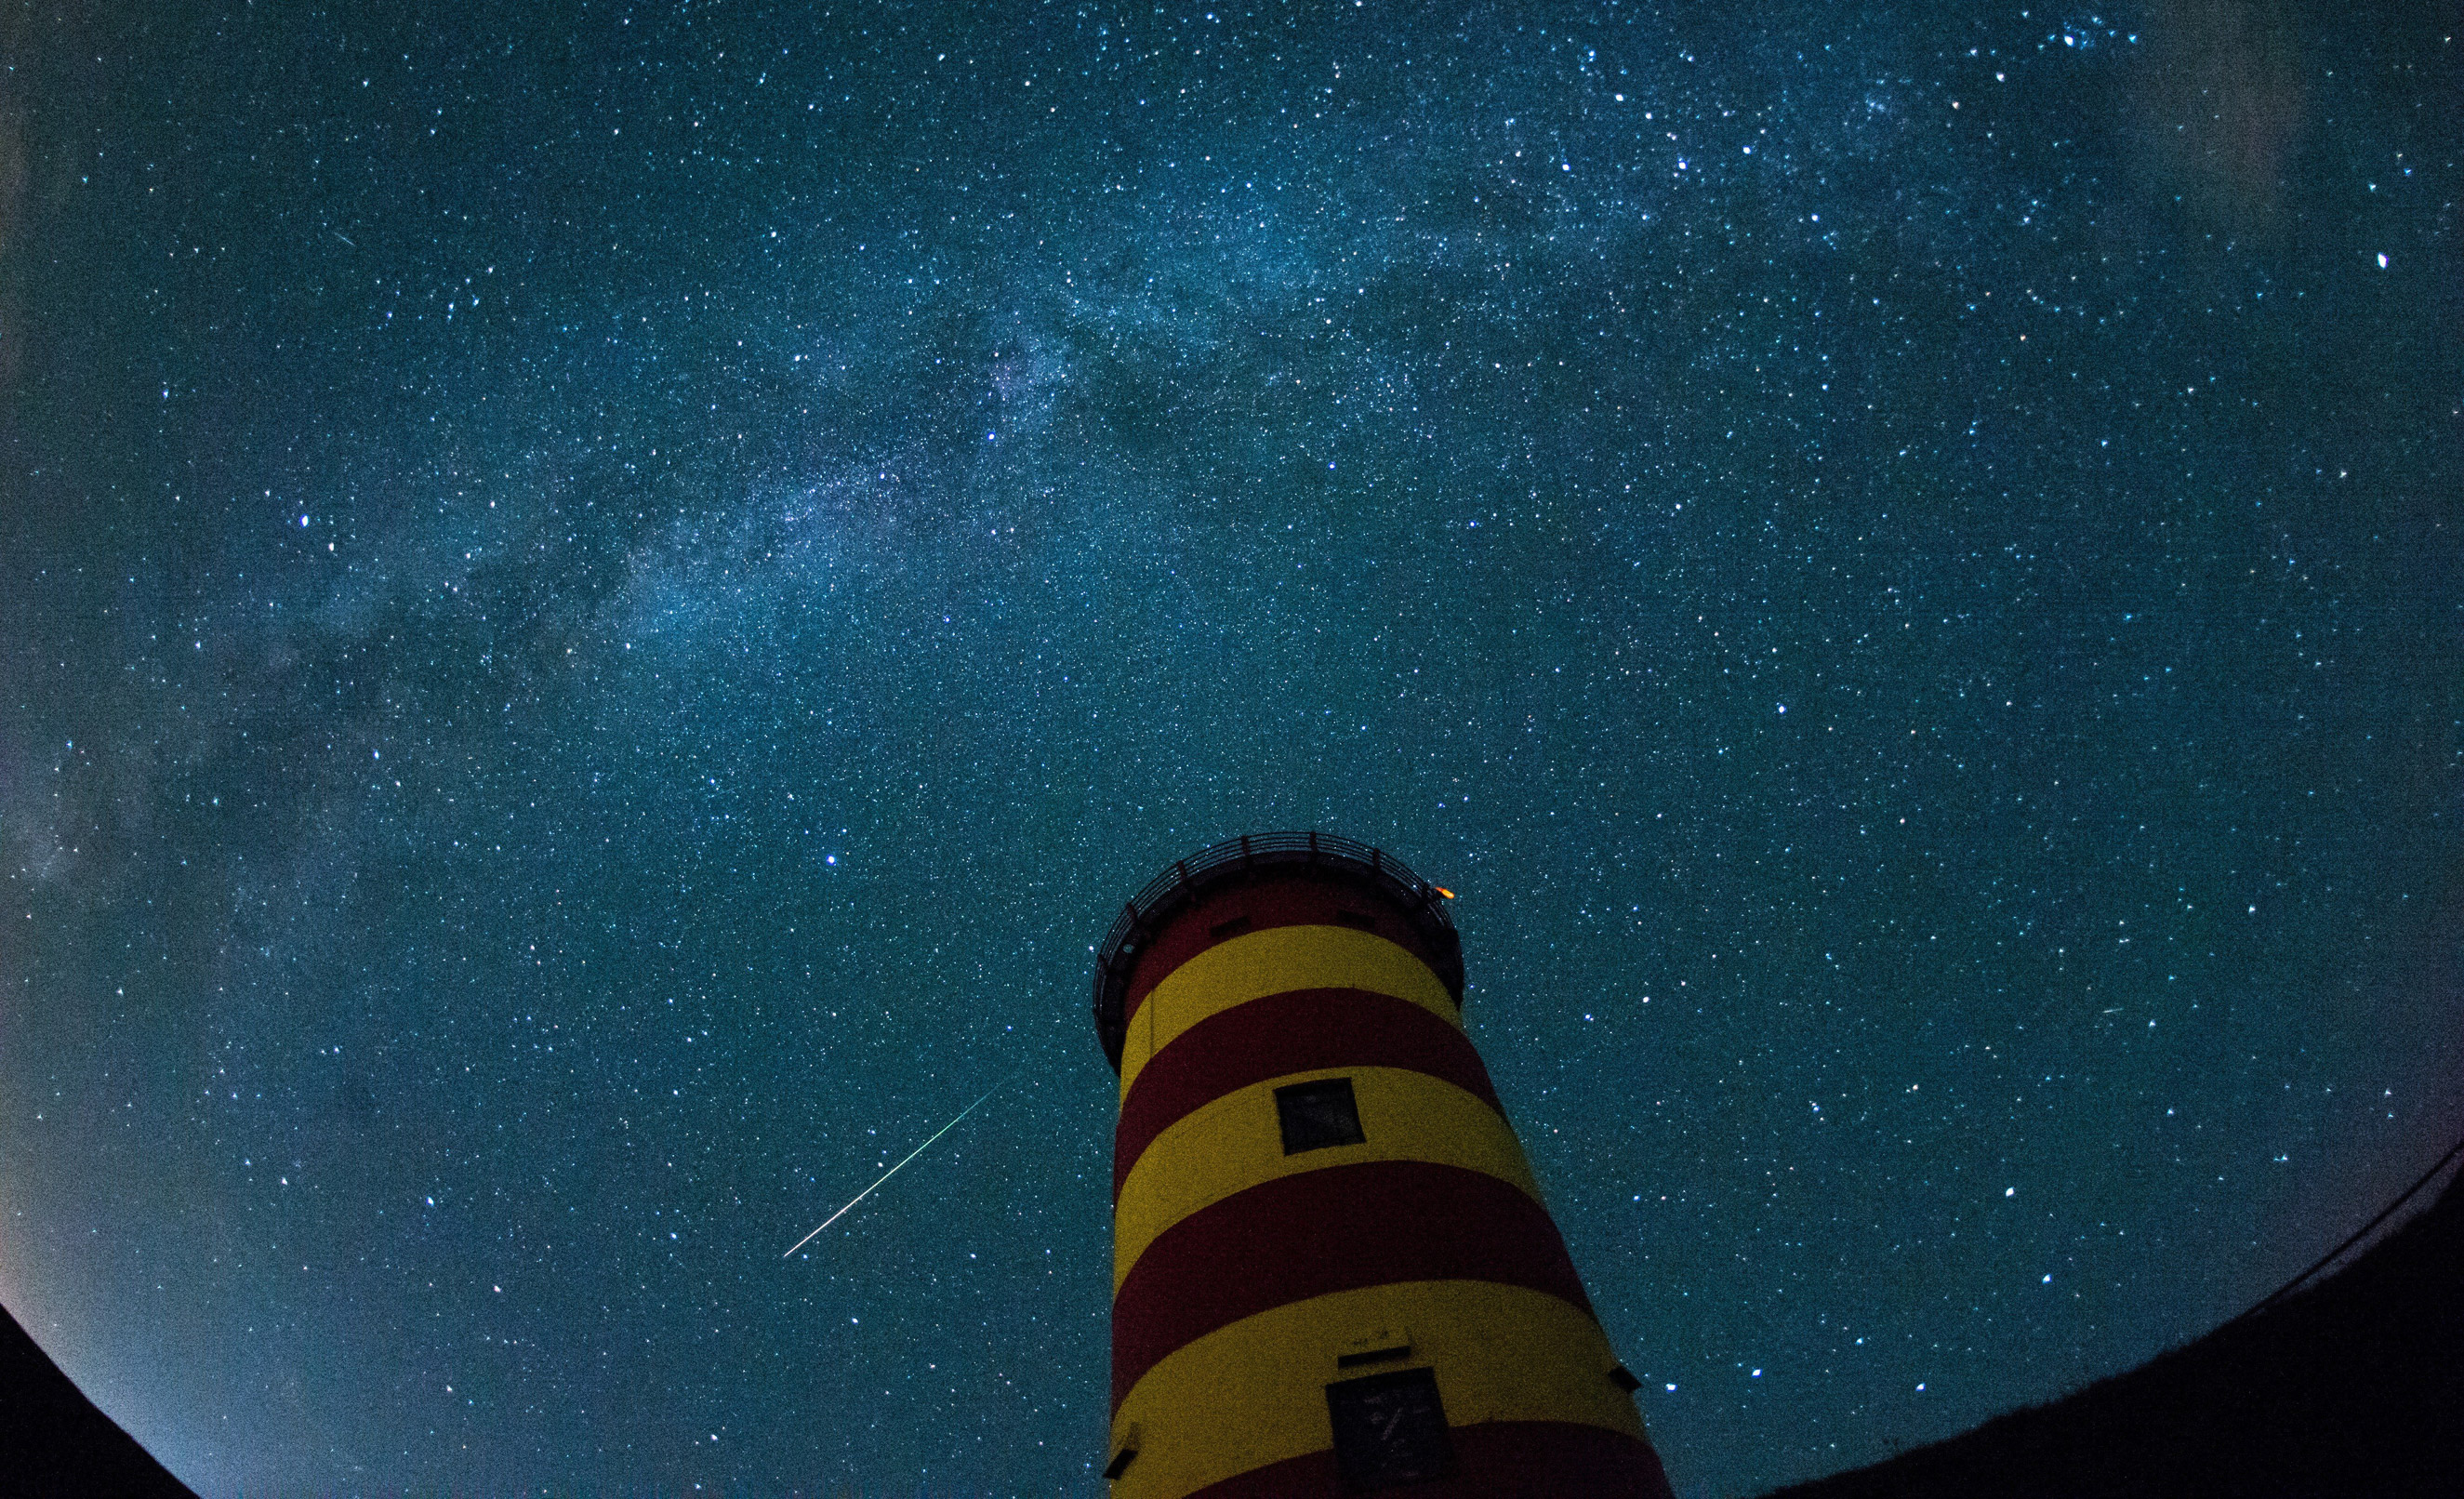 13 Aug 2015, Germany --- A shooting star lights up the night sky above the Pilsum lighthouse in Pilsum, Germany, 12 August 2015. Additionally towards the top of the image the Milky Way can be seen. On the nights of the 12 and 13 August 2015 the shooting stars of the Perseid stream are to unfold at maximum splendor. Photo: Matthias Balk/dpa --- Image by © Matthias Balk/dpa/Corbis